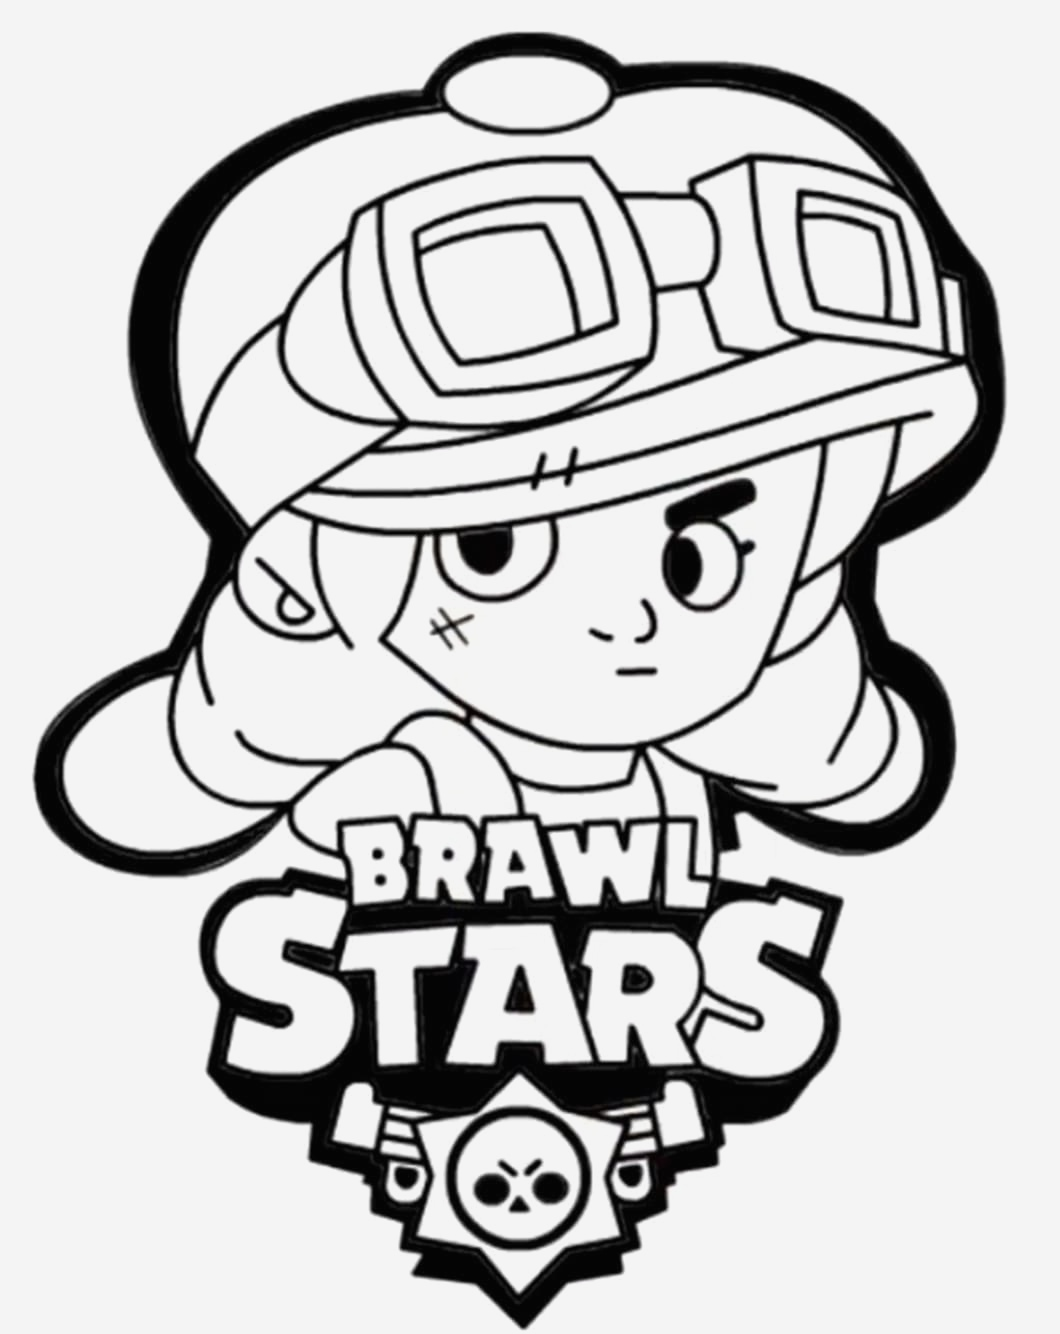 Coloriage Brawl Stars Corbac Awesome Coloriage Brawl Stars Imprimer Gratuitement 100 Images Of Coloriage Brawl Stars Corbac